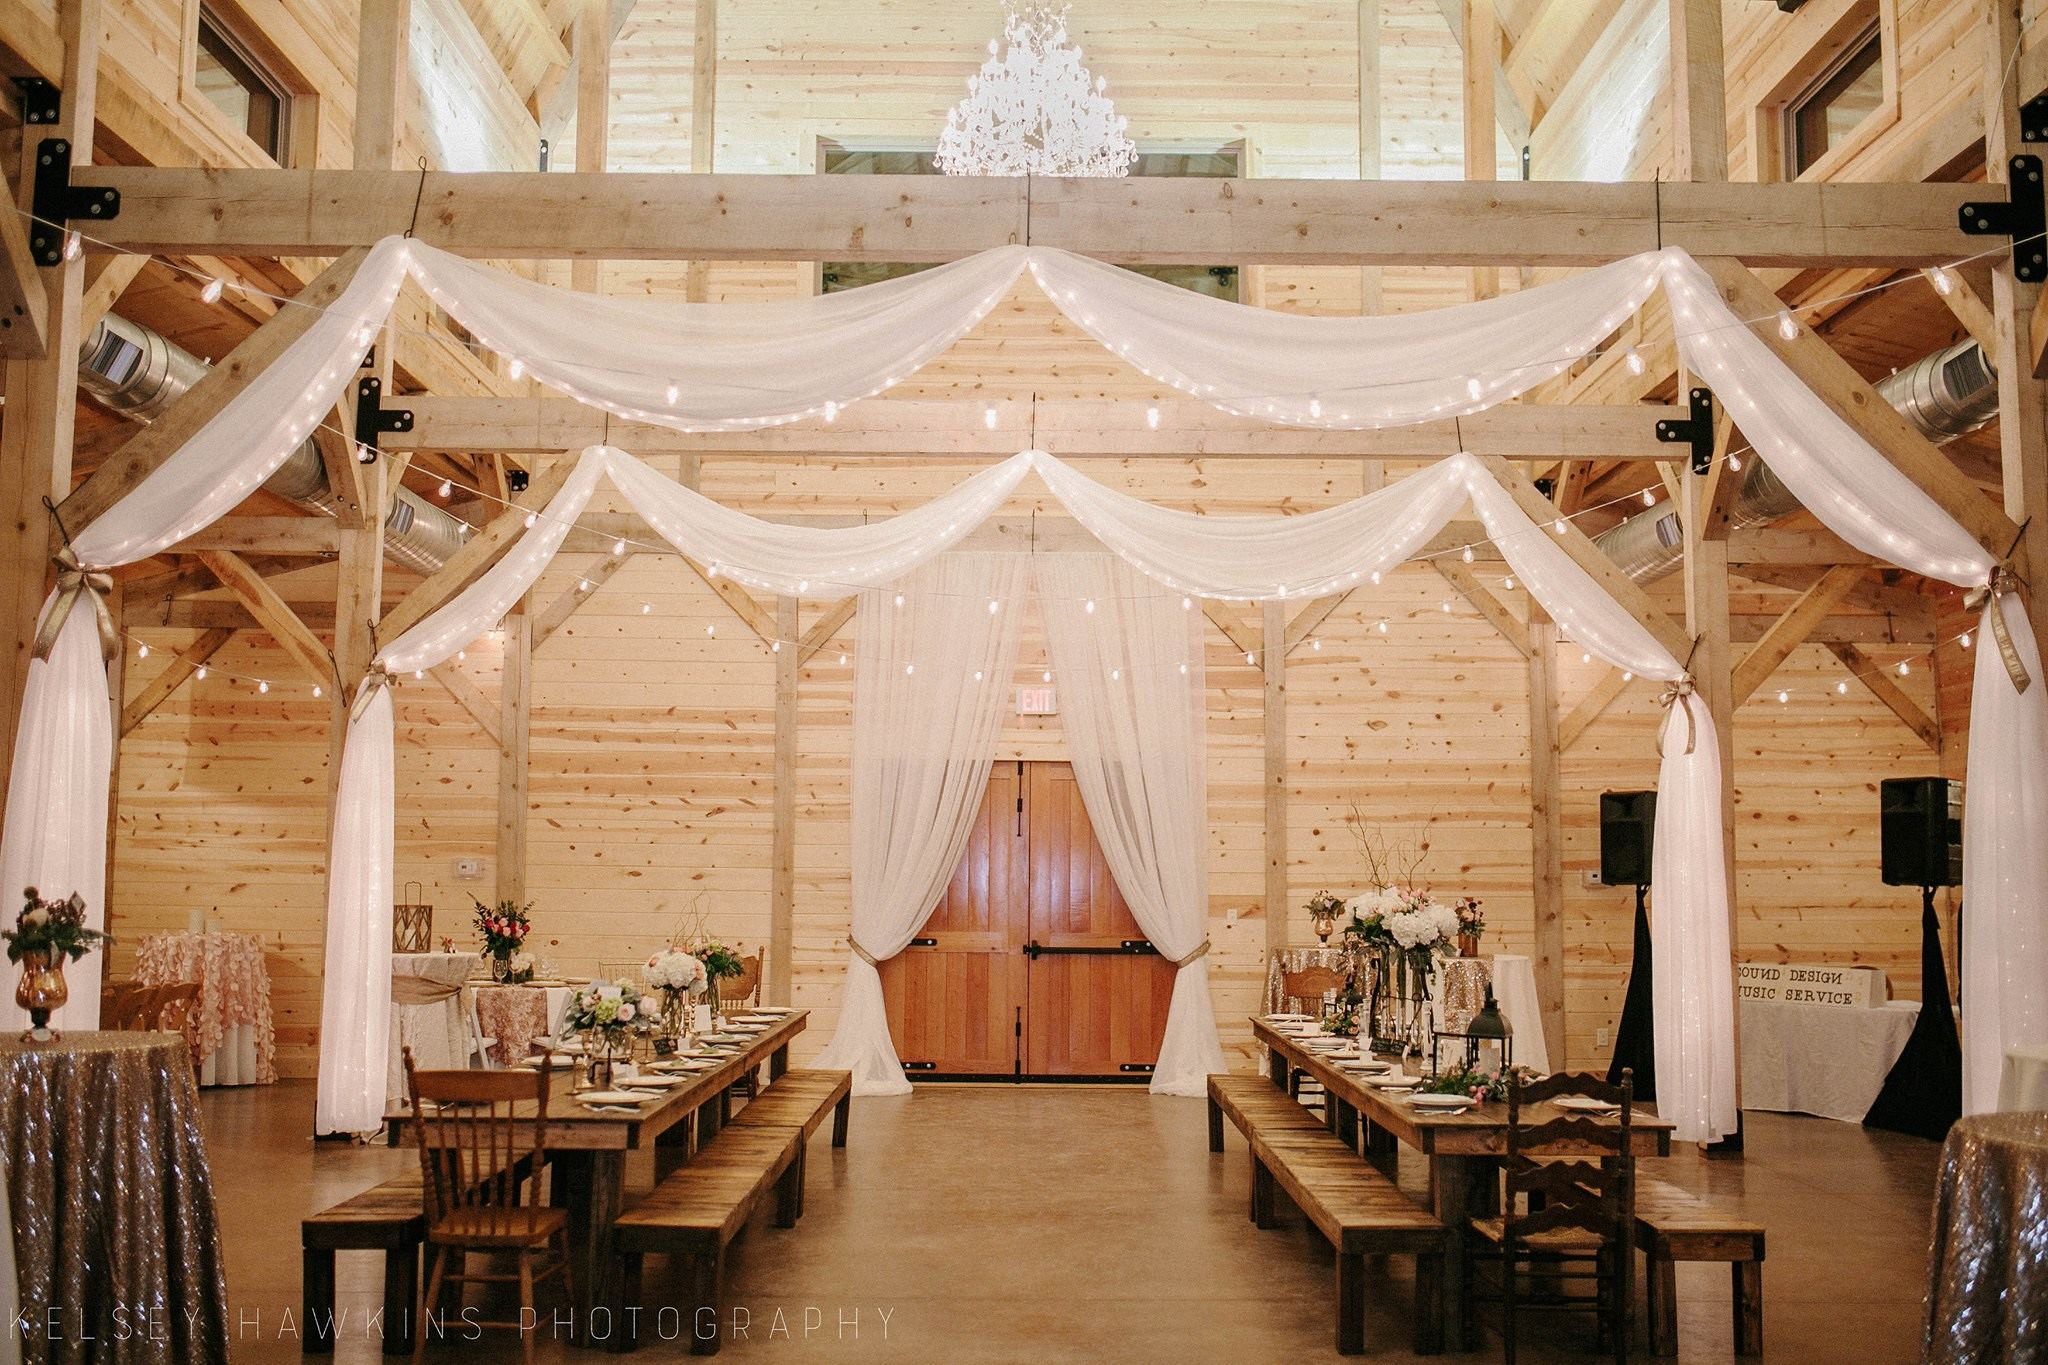 Blessing Barn Wedding and Event Venue - 4